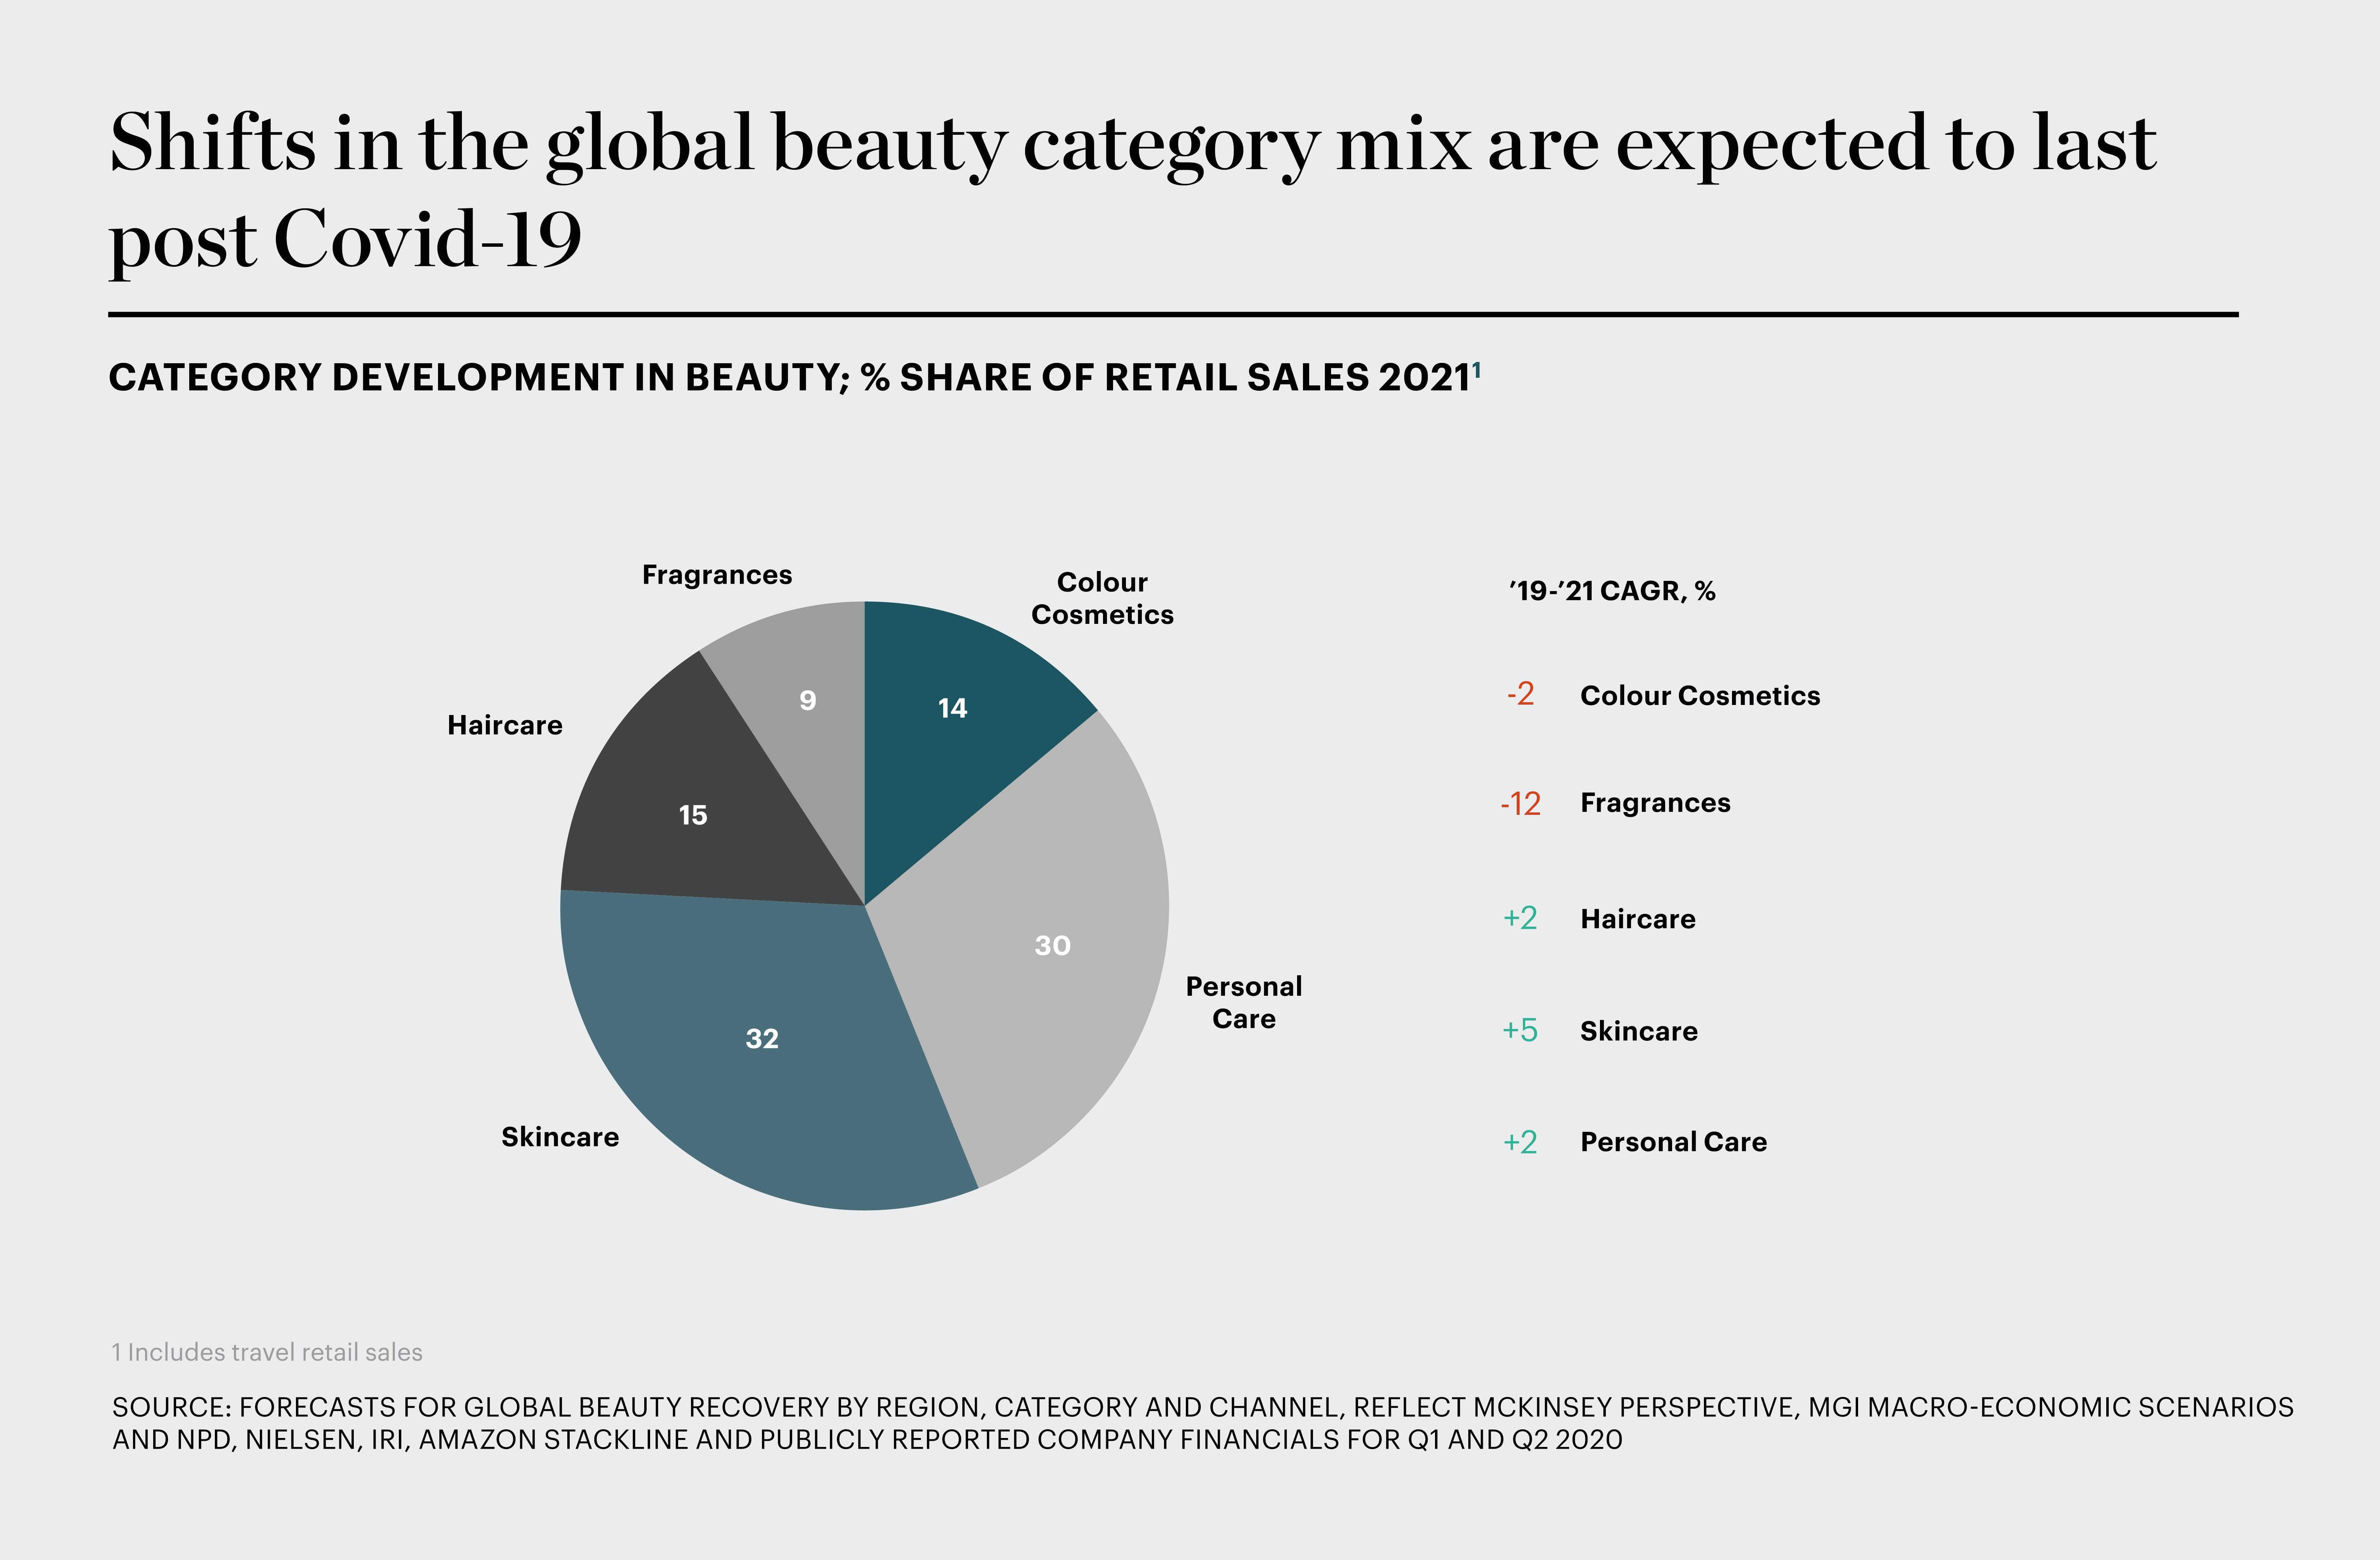 Beauty Will Make a Quick Comeback, But the Market Will Have Changed | The Business of Beauty, News & Analysis